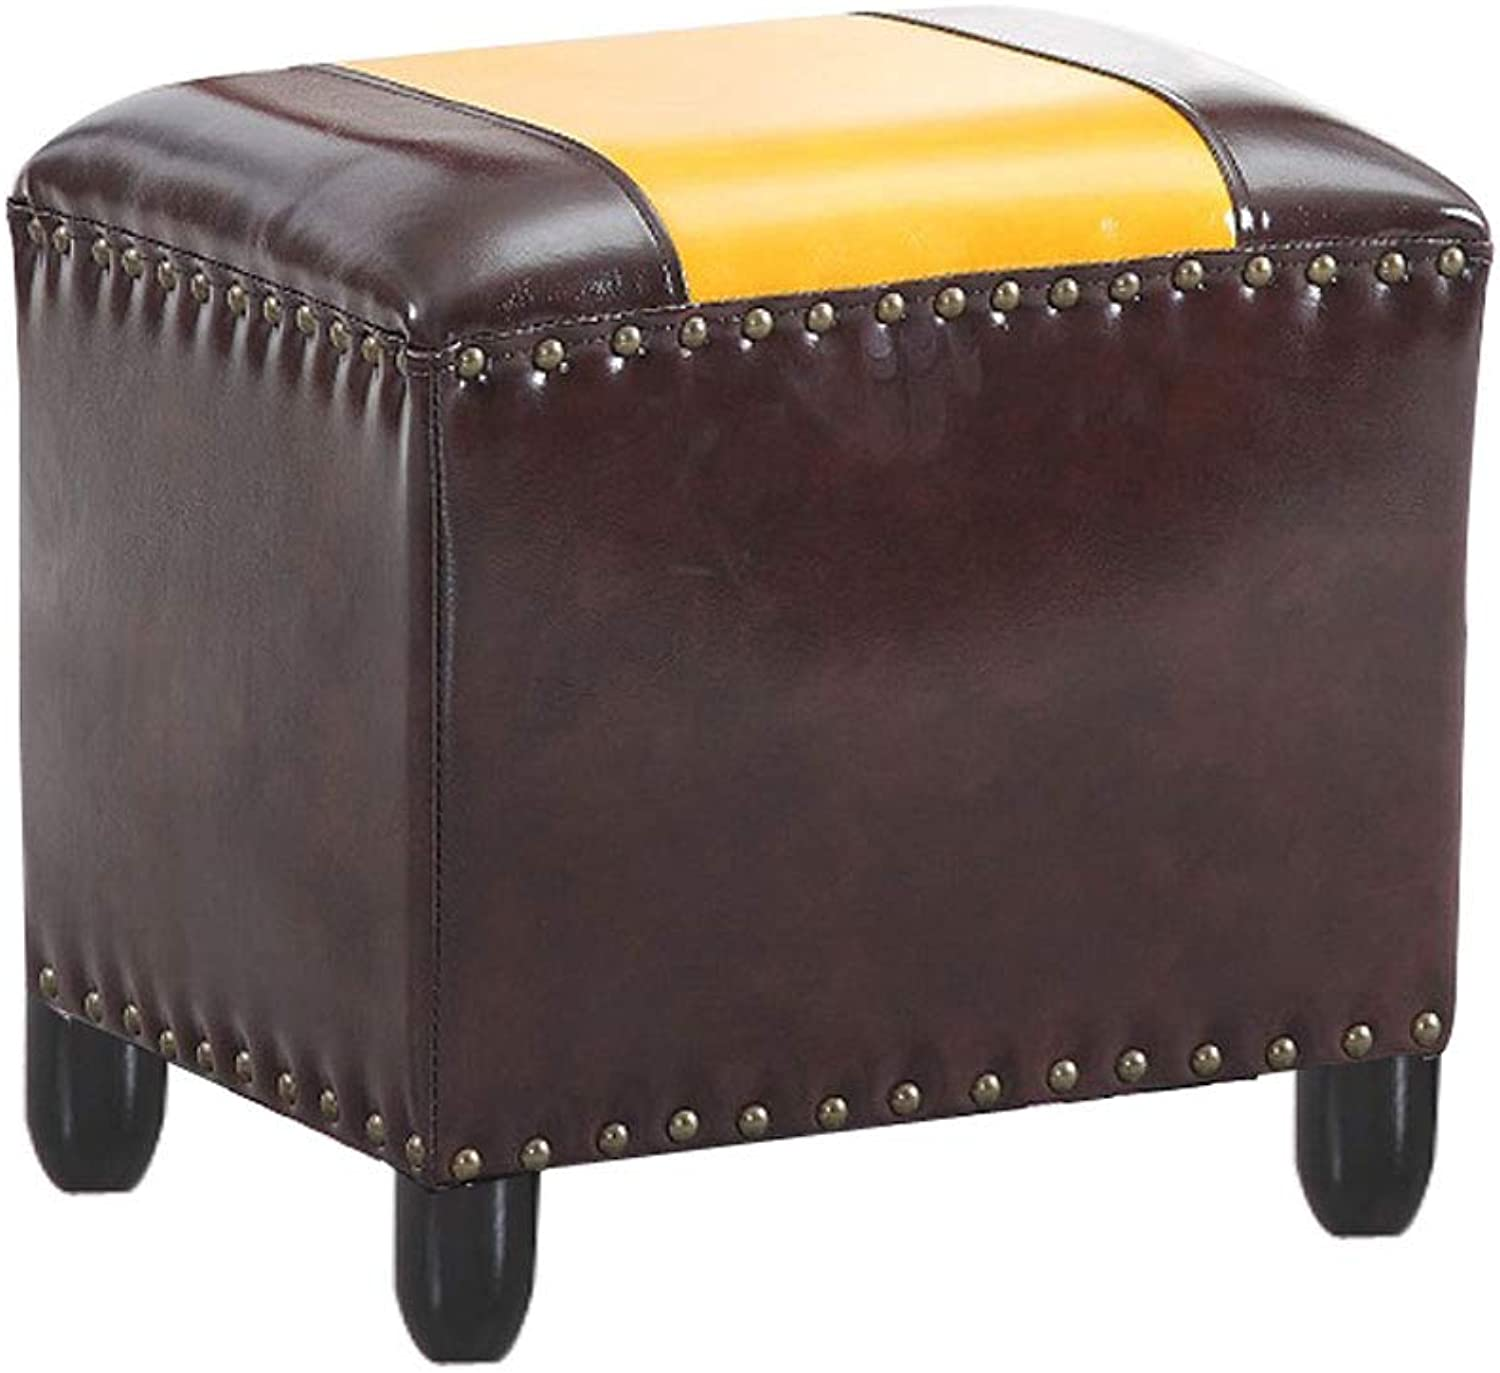 Solid Wood Small Bench Living Room Coffee Table Sofa Stool Fitting Room Waterproof Leather Stool Square Stool (Size   30cm)